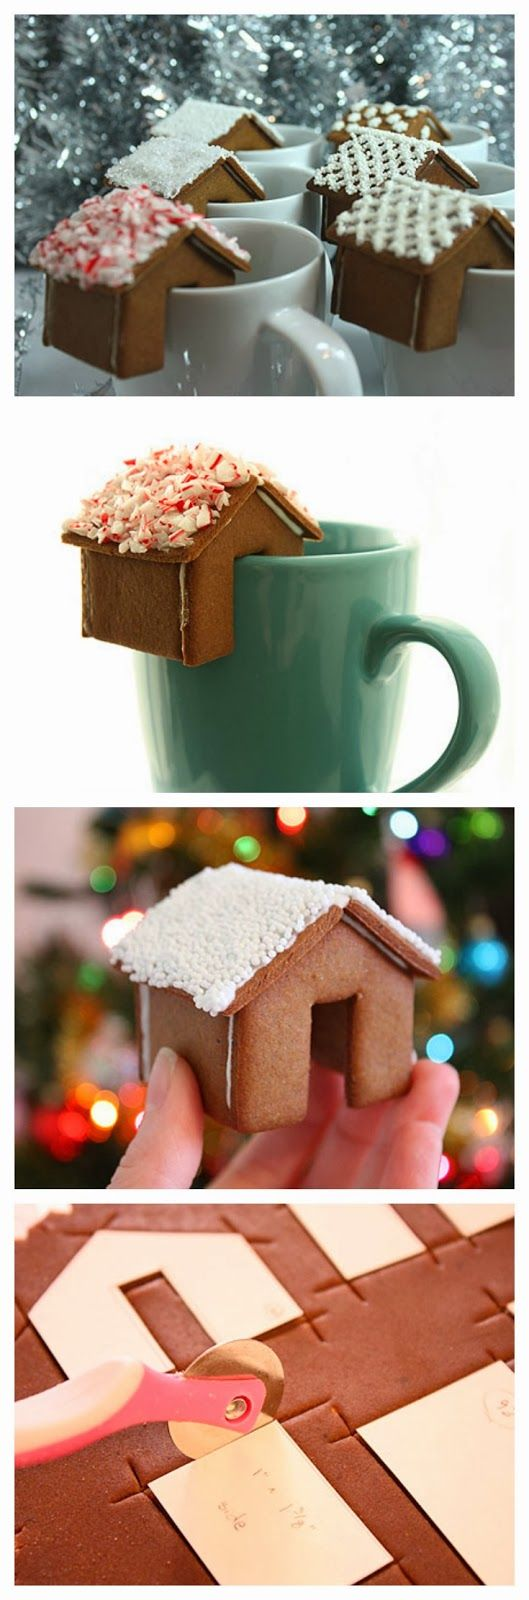 Gingerbread houses that perch on your mug! - Craft Blog UK